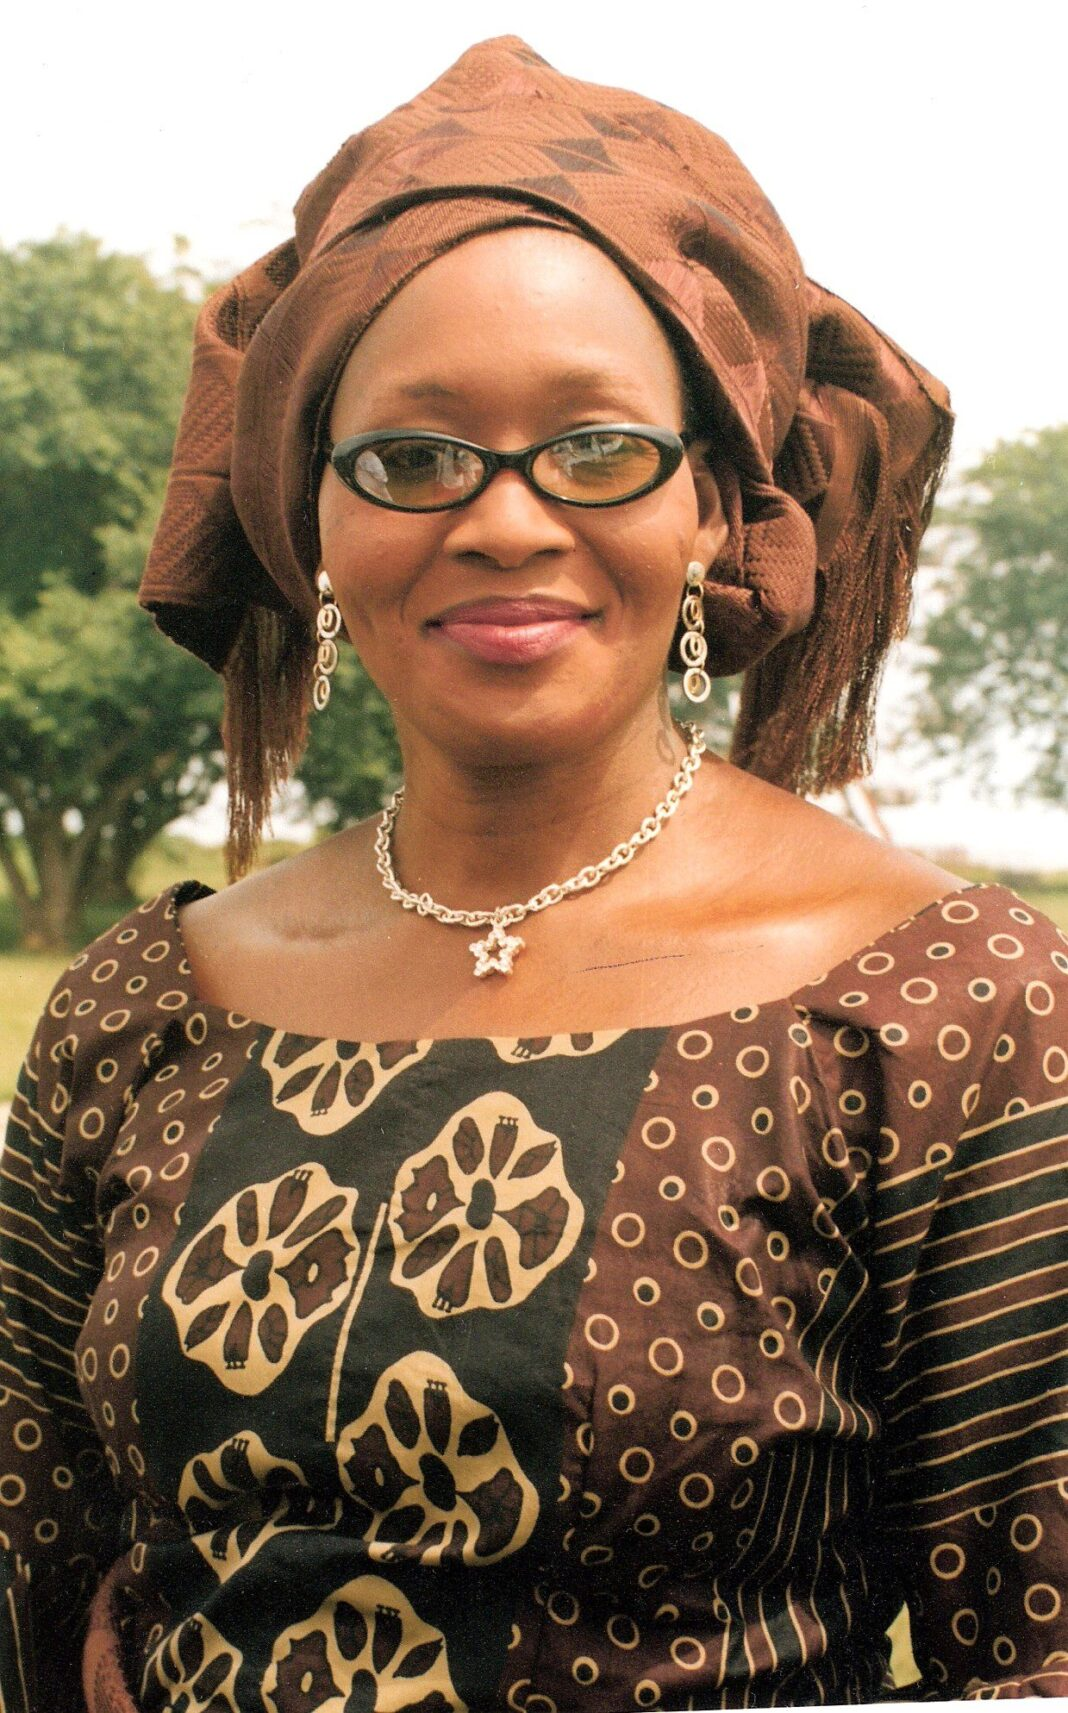 kemi olunloyo gifts herself nigerian journalist of the year - Kemi Olunloyo 1068x1713 - Kemi Olunloyo Gifts Herself Nigerian Journalist Of The Year